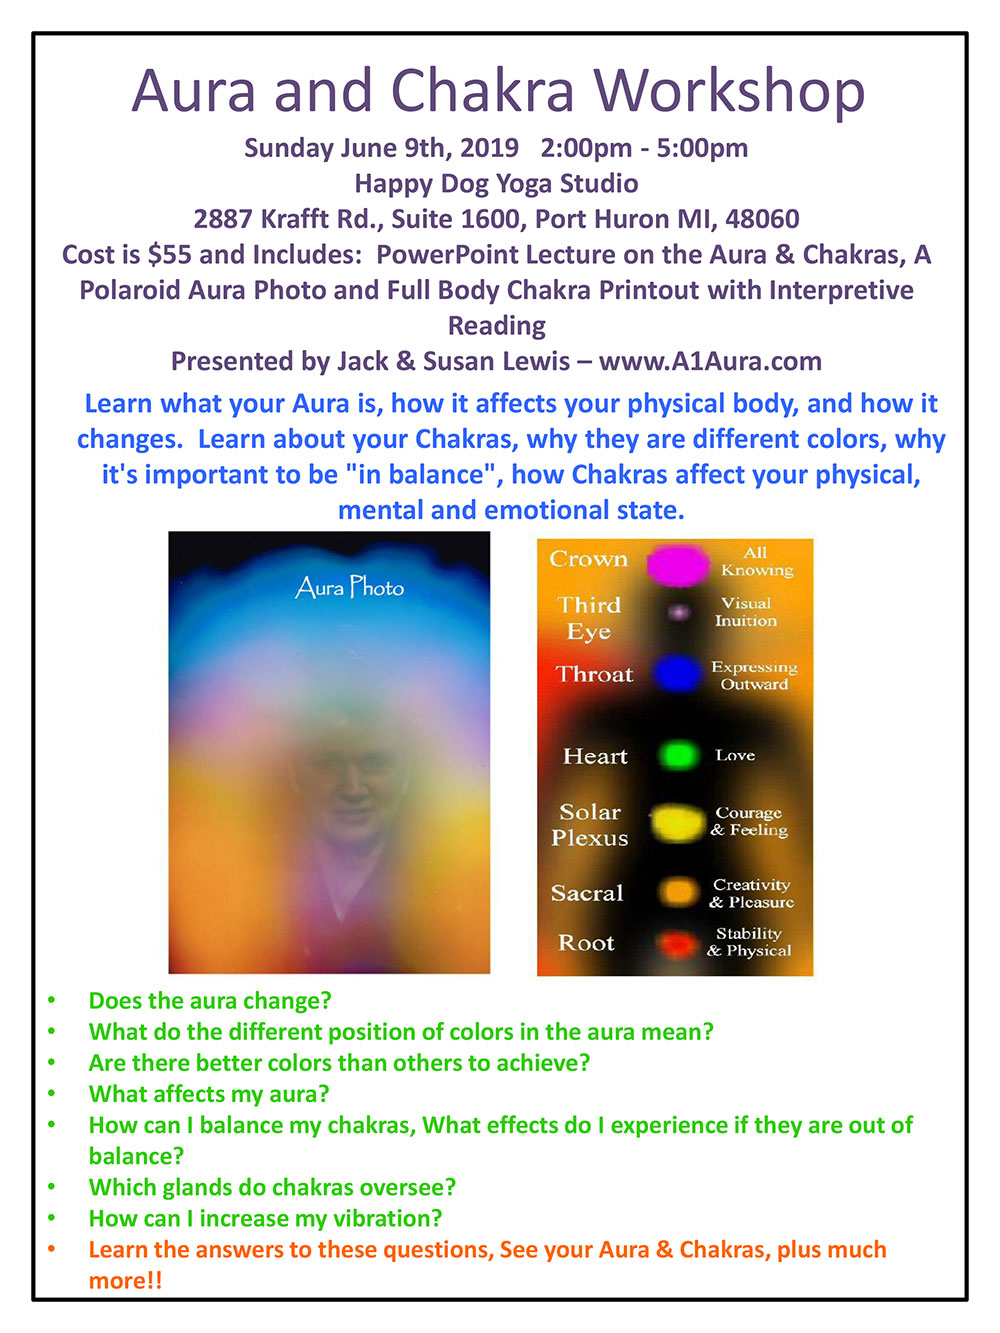 Aura and Chakra Workshop